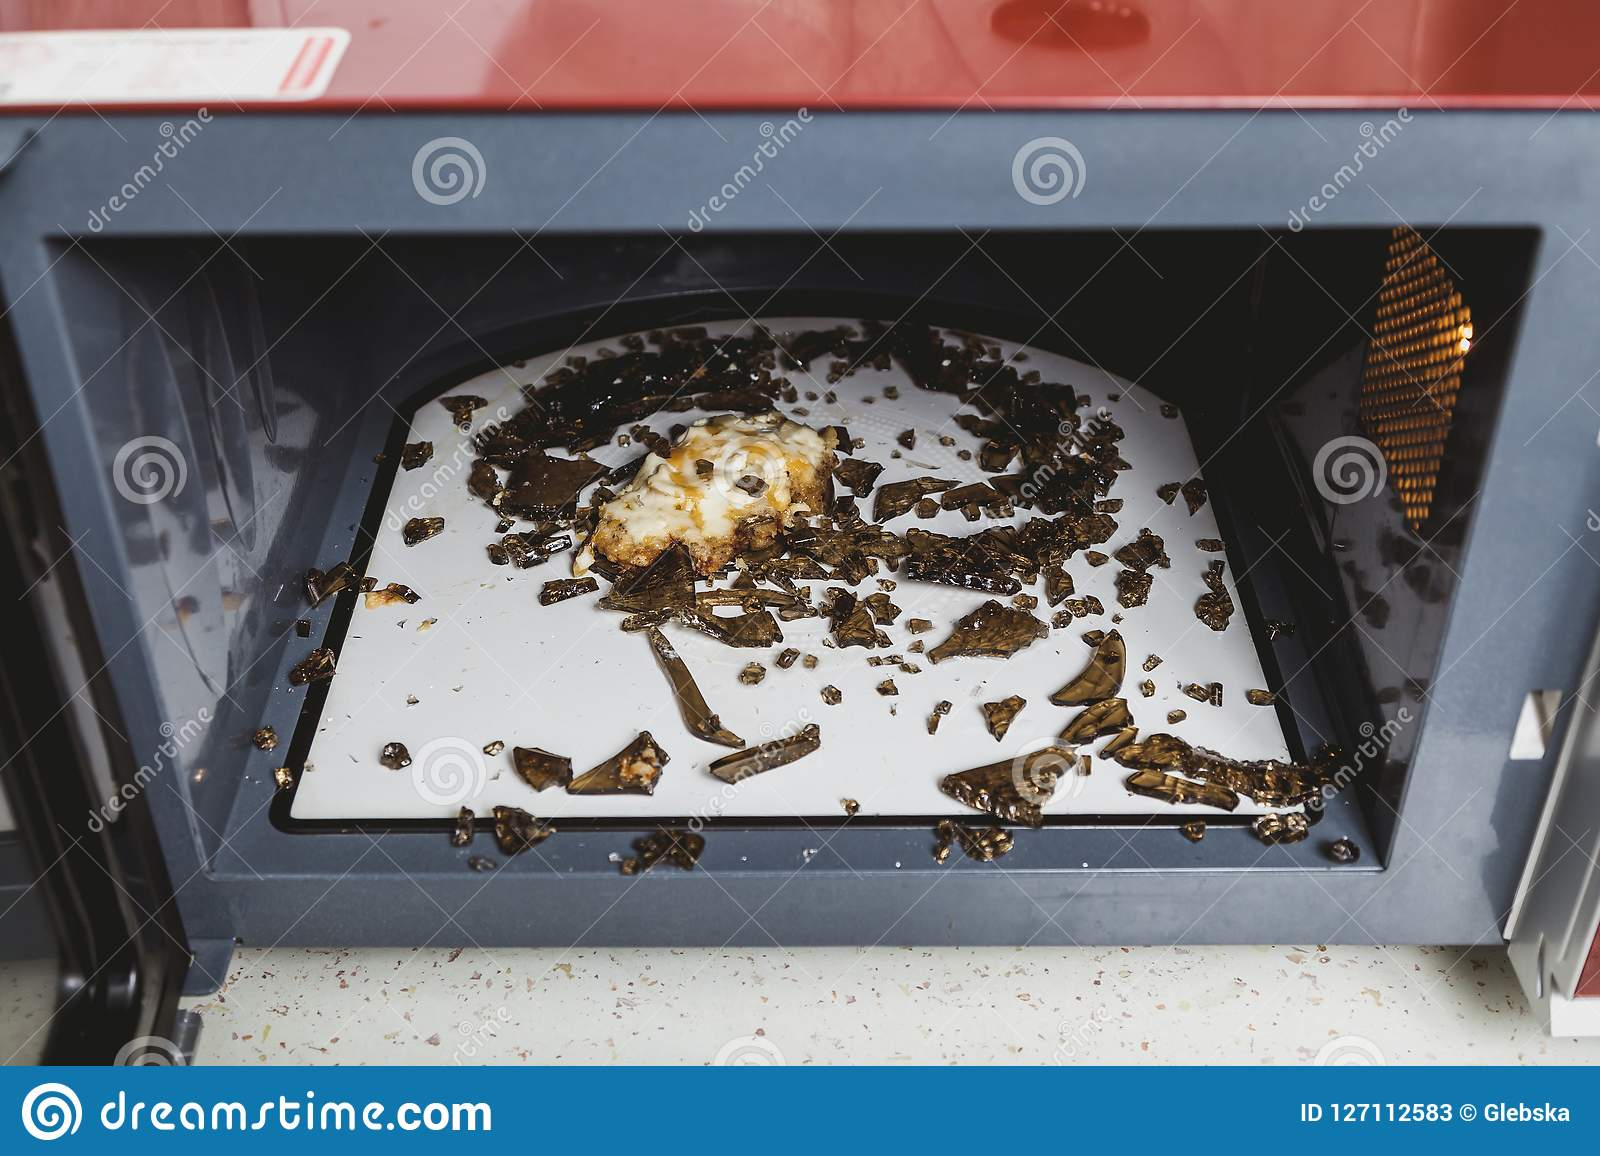 Glass Plate Cover For Microwave Shards Of Glass Plate In Microwave Oven Stock Image Image Of